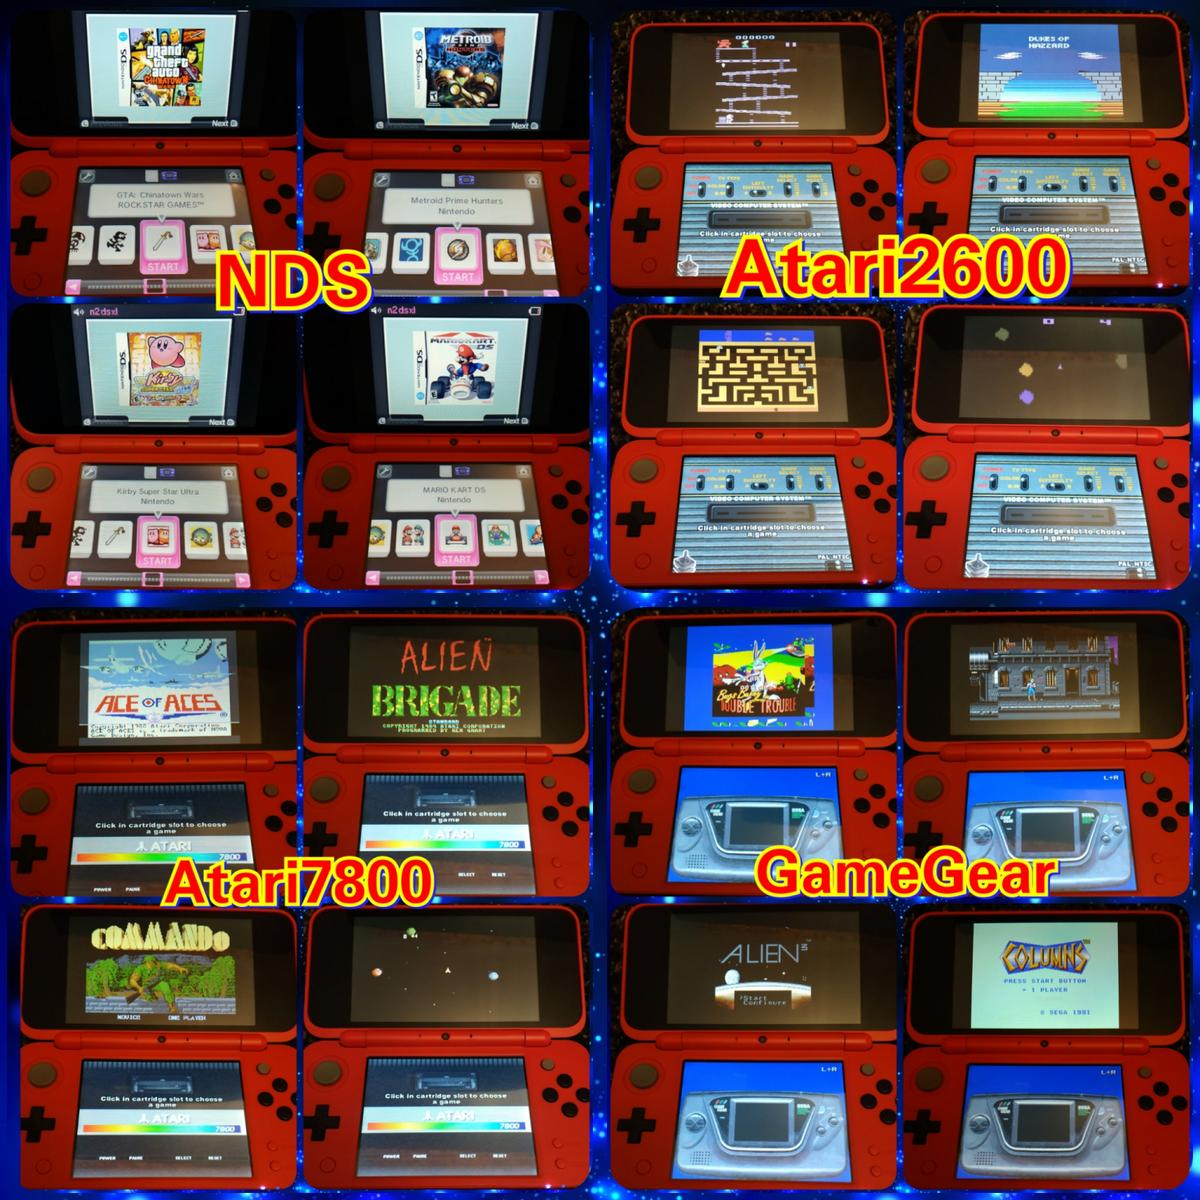 New 2DS XL Console,GBA,Snes,Mega Drive in L1 Liverpool for £180 00